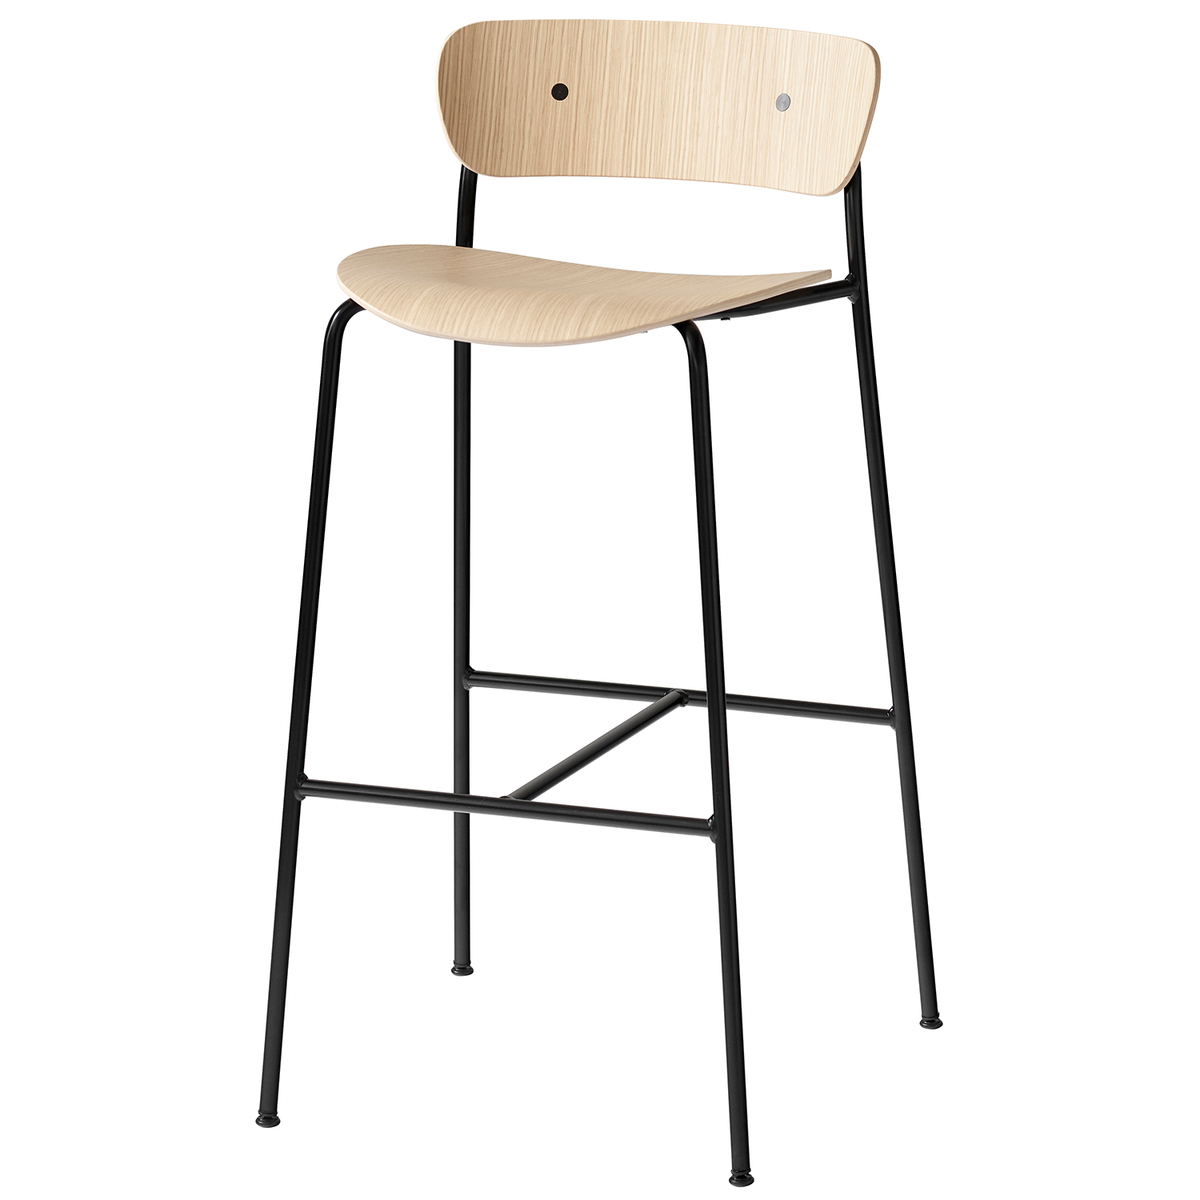 &Tradition Pavilion AV7 / AV9 bar stool, lacquered oak from &Tradition